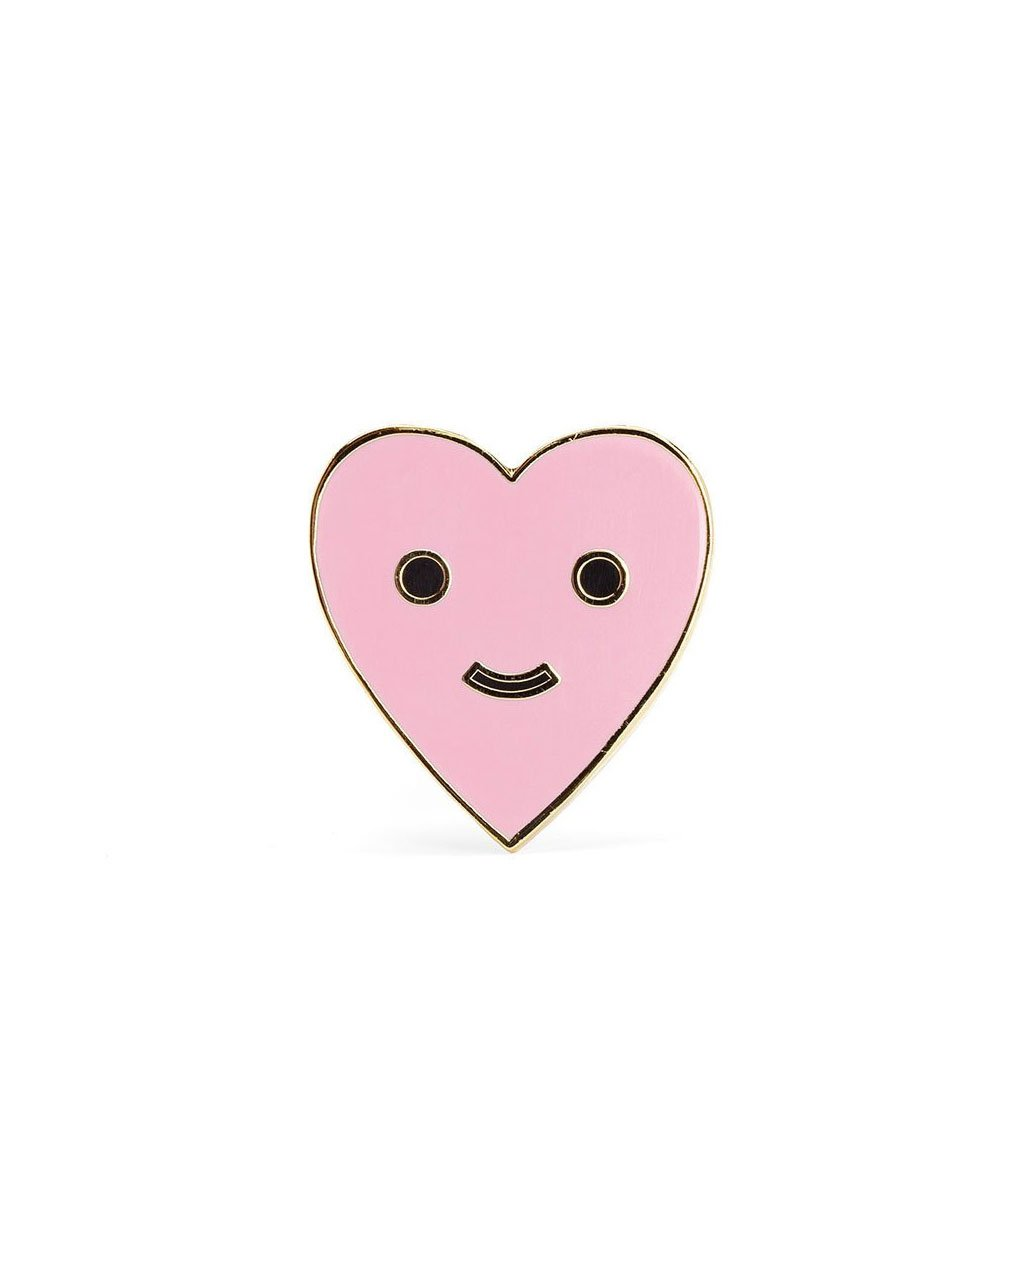 Herbie The Happy Heart Enamel Pin